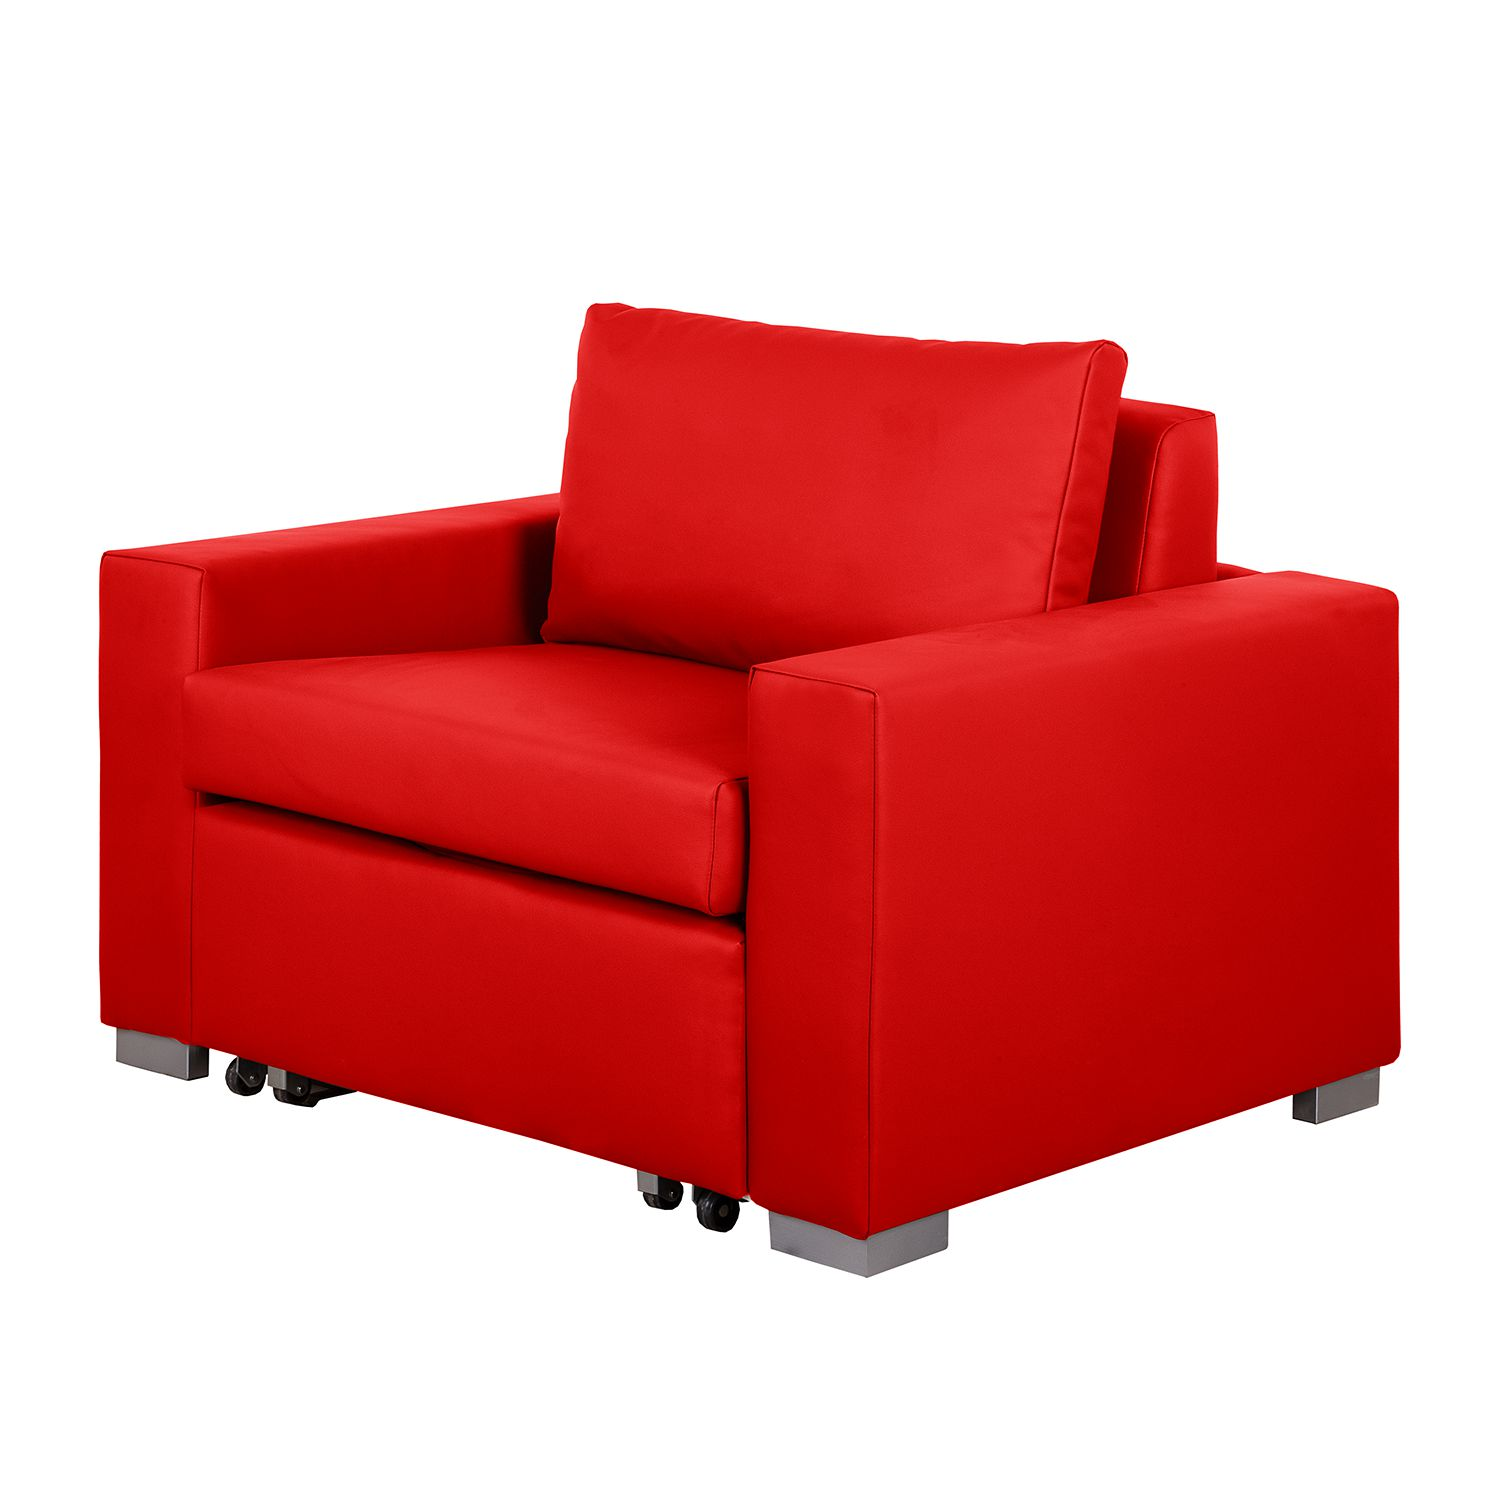 Fauteuil convertible Latina IV - Imitation cuir - Rouge, mooved